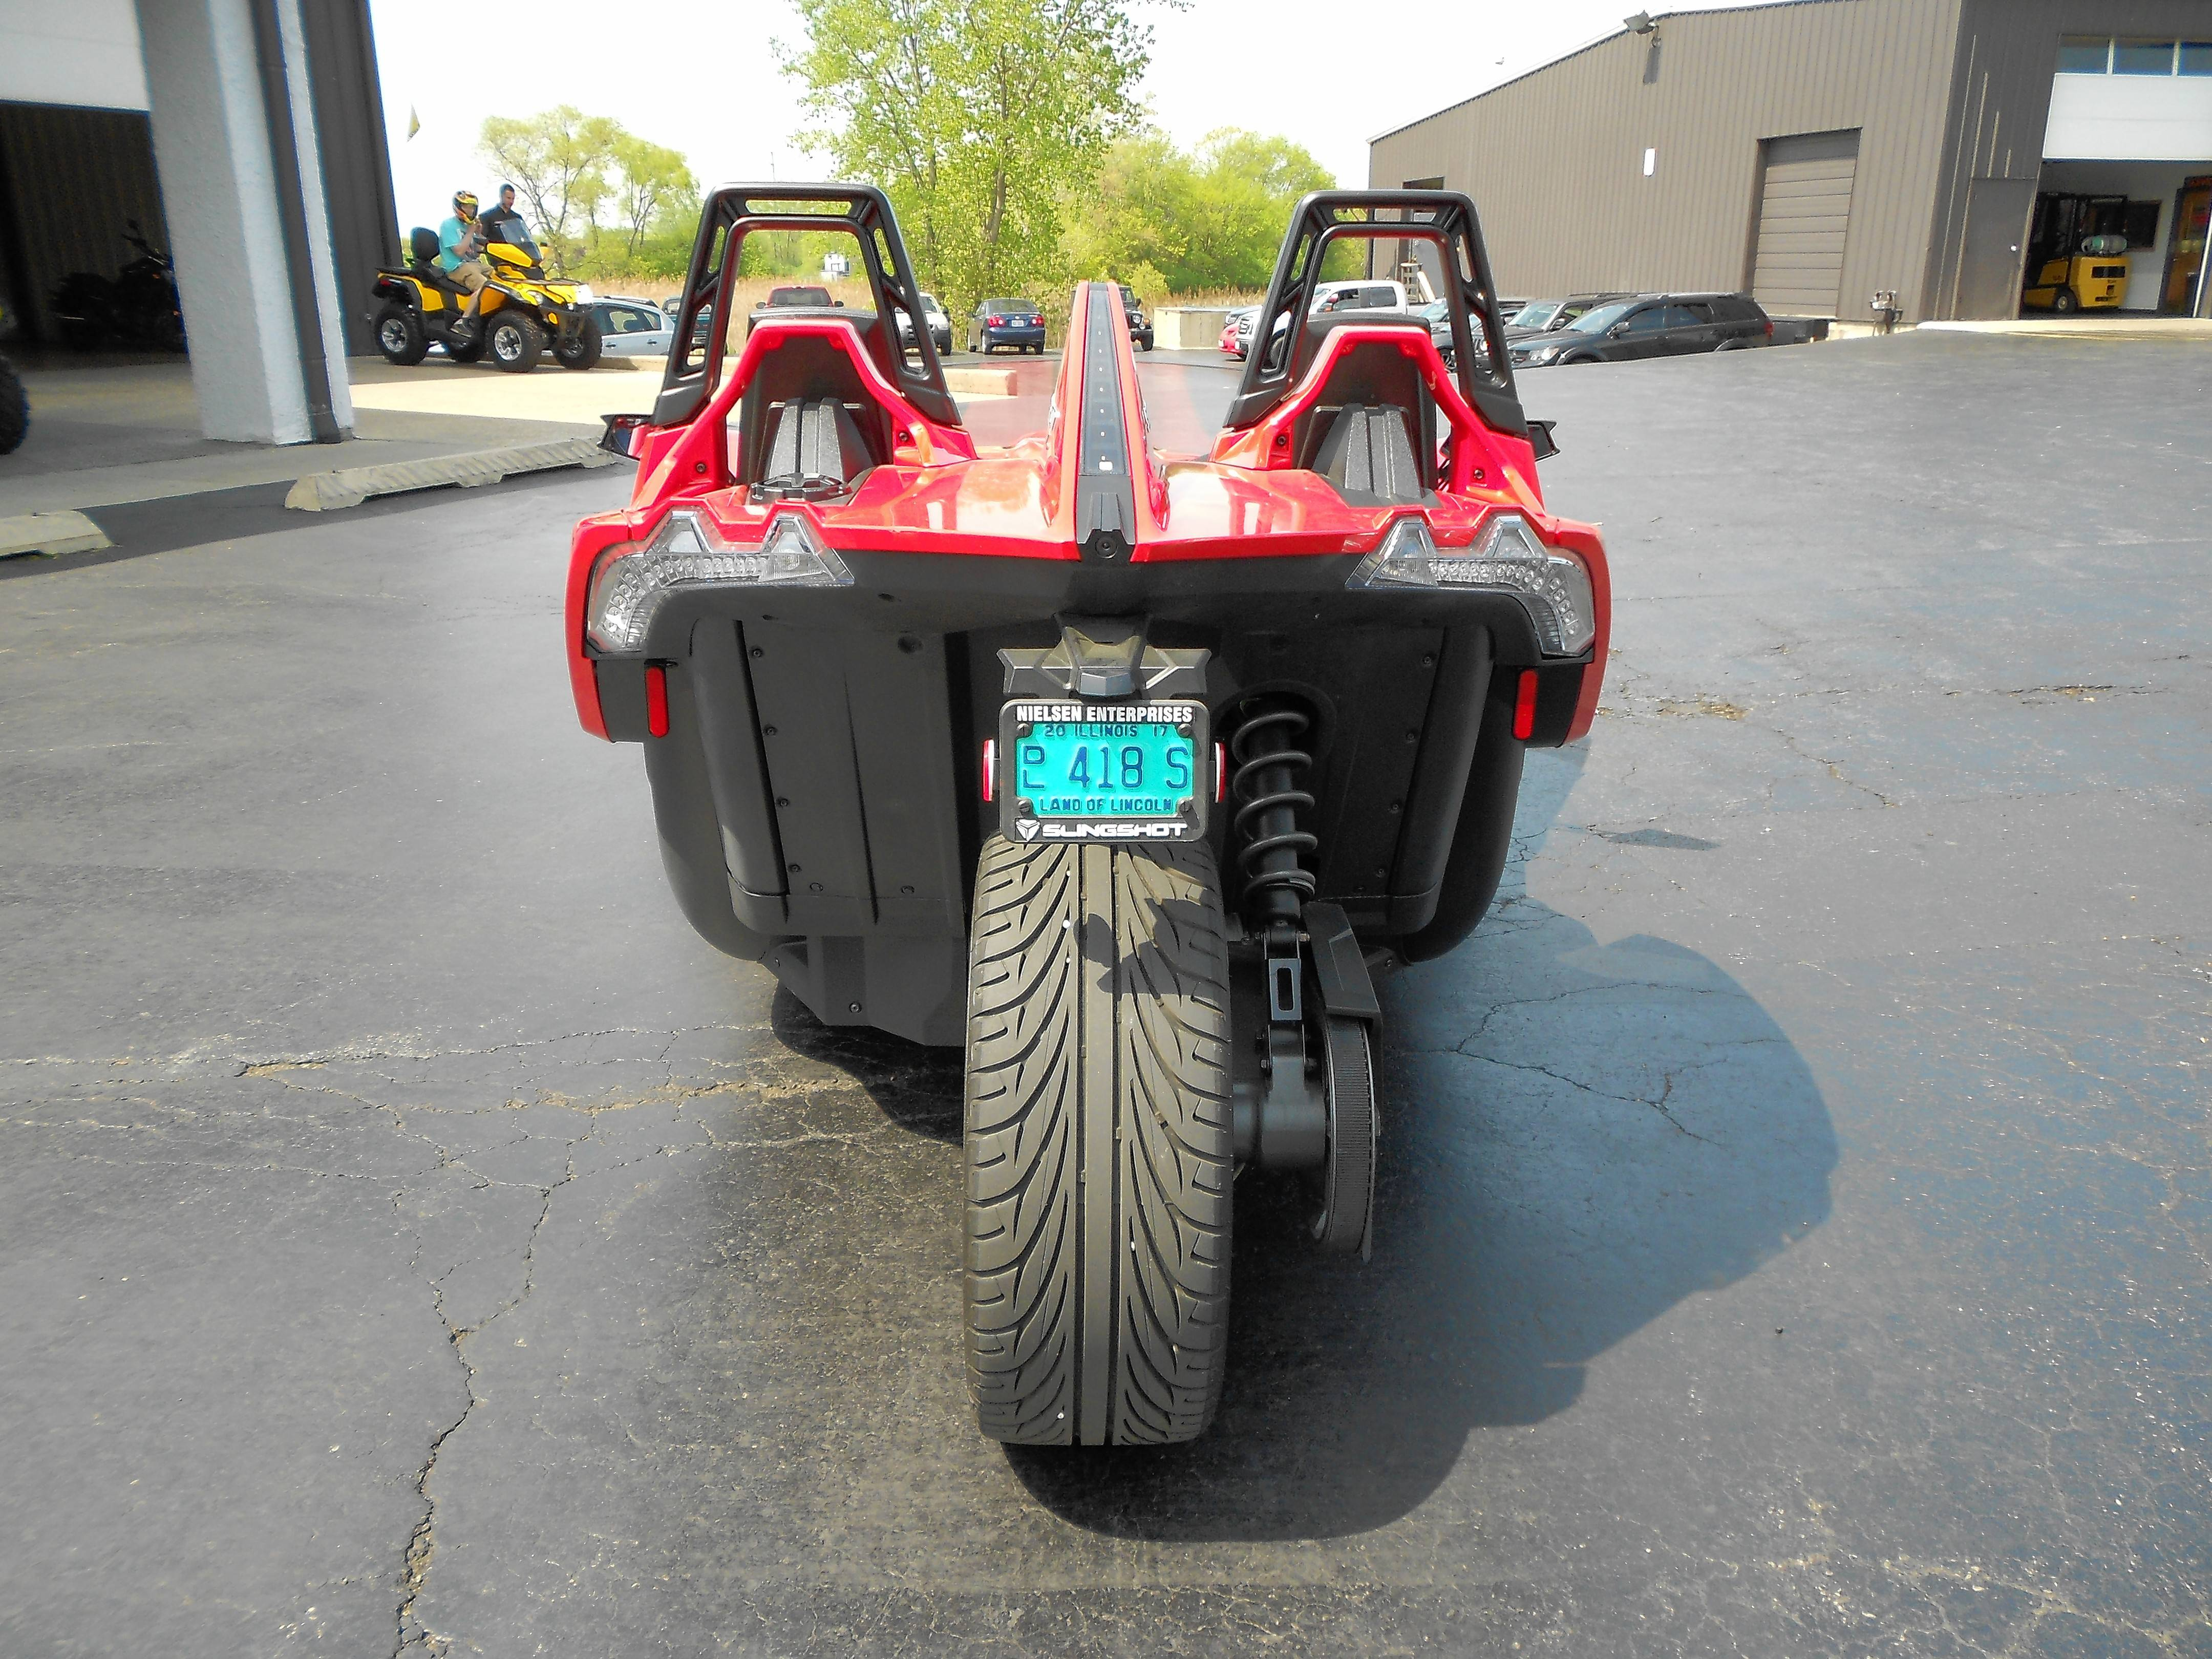 A big 265/35R-20 Kenda tire is found on the back of the three-wheel vehicle.